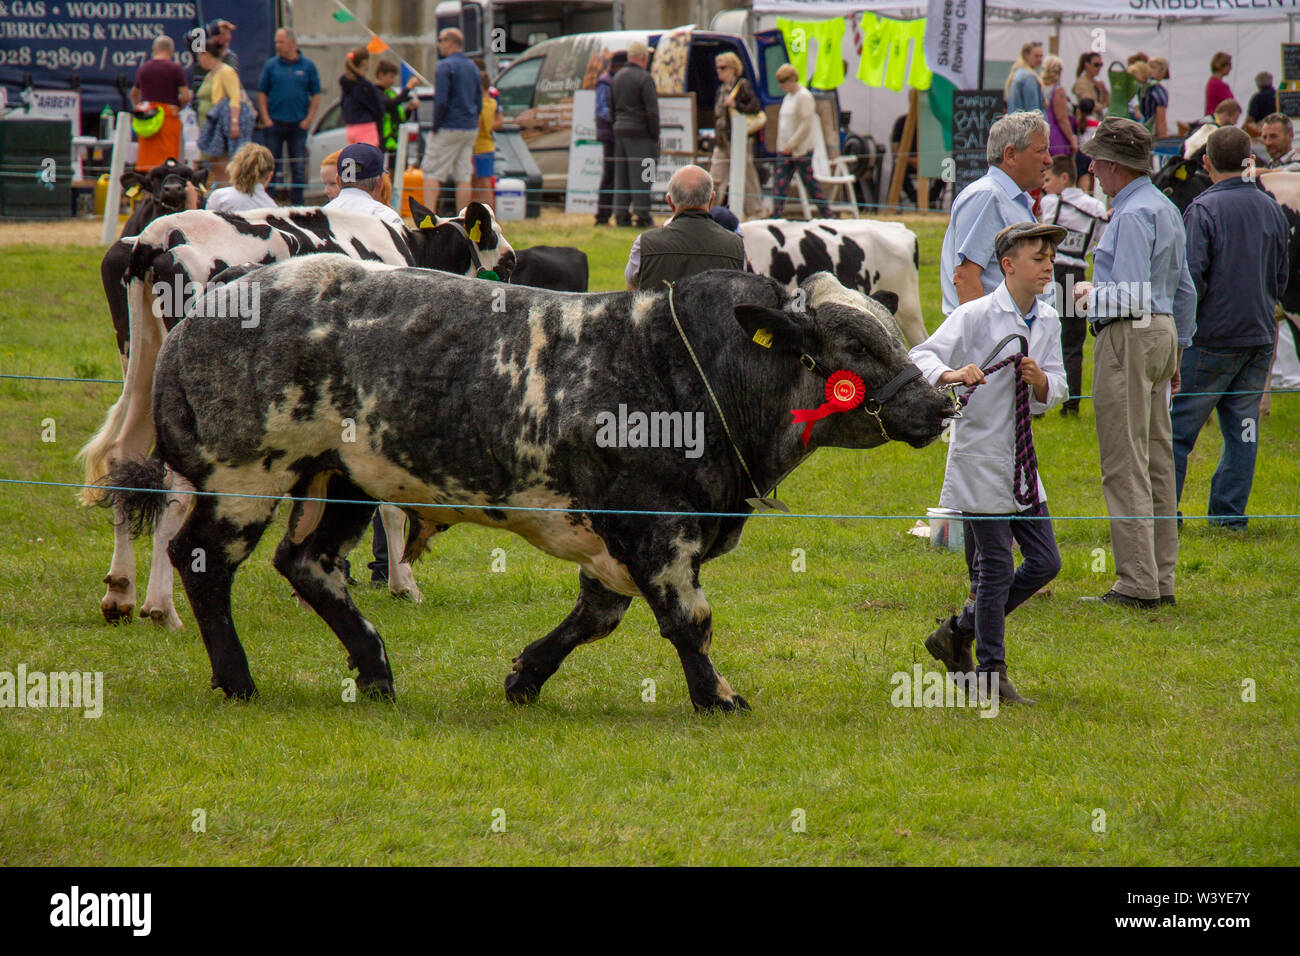 skibbereen-west-cork-ireland-18th-july-2019-the-sun-shone-on-the-carbery-show-today-allowing-the-community-to-show-off-their-animals-ride-their-horses-and-enjoy-the-fun-of-the-show-ground-credit-aphperspective-alamy-live-news-W3YE7Y.jpg